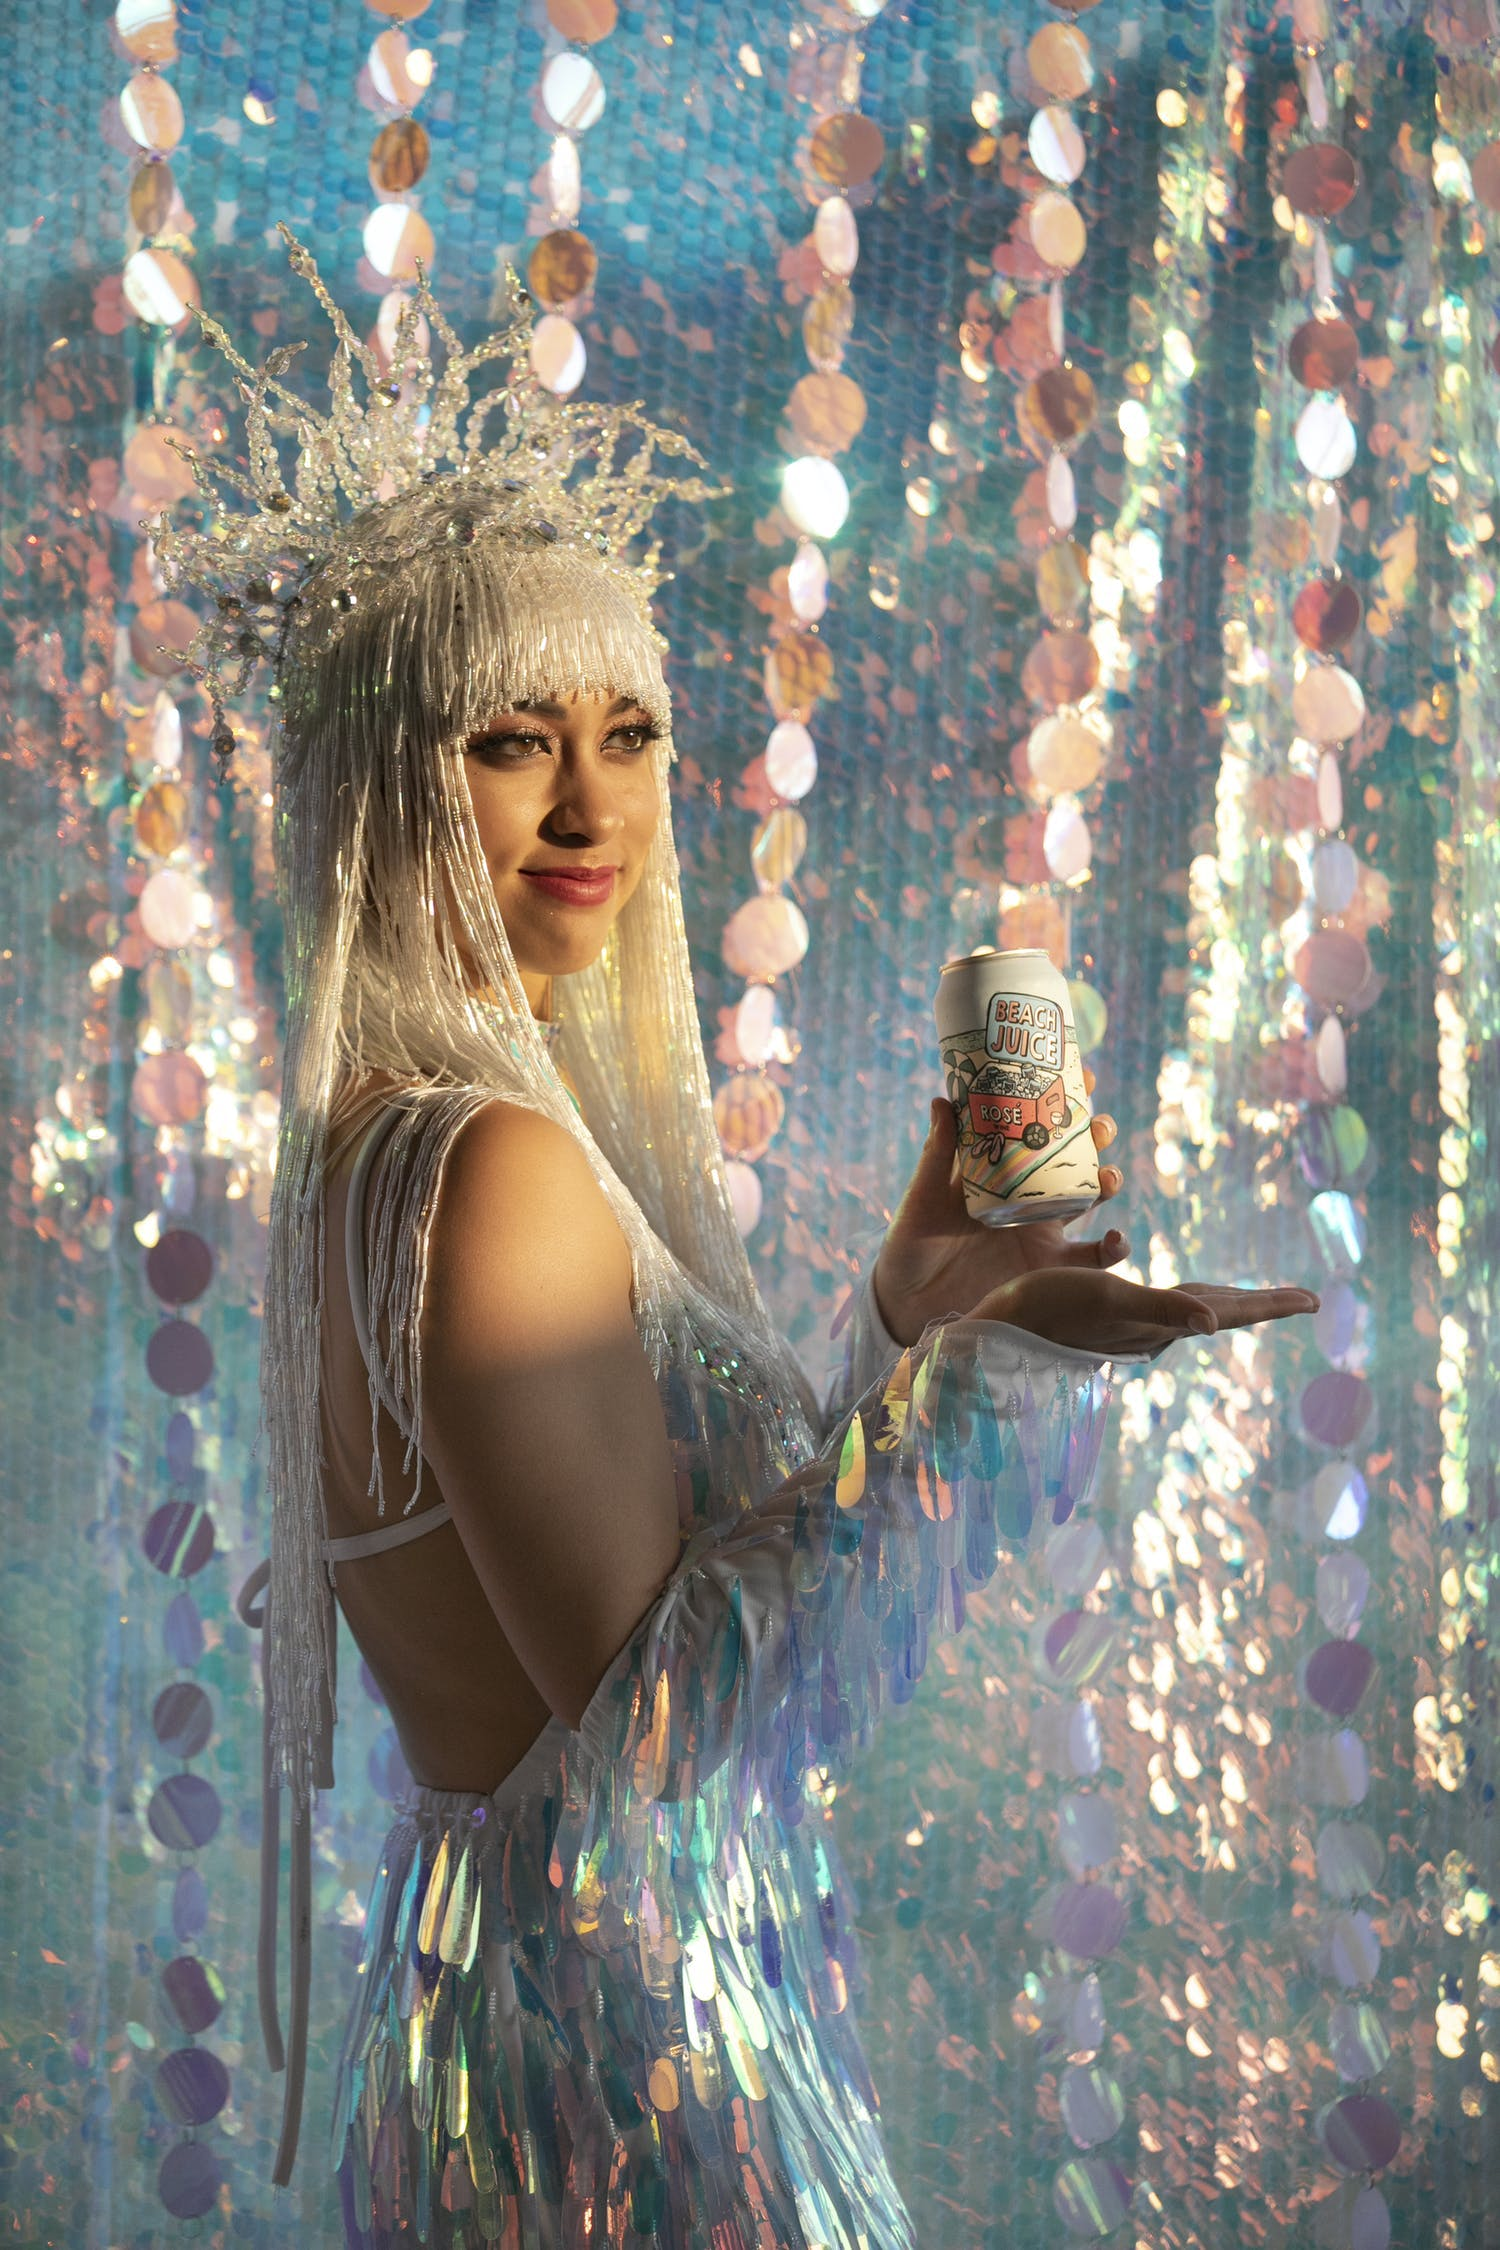 Woman holding beer can against a backdrop of iridescent décor